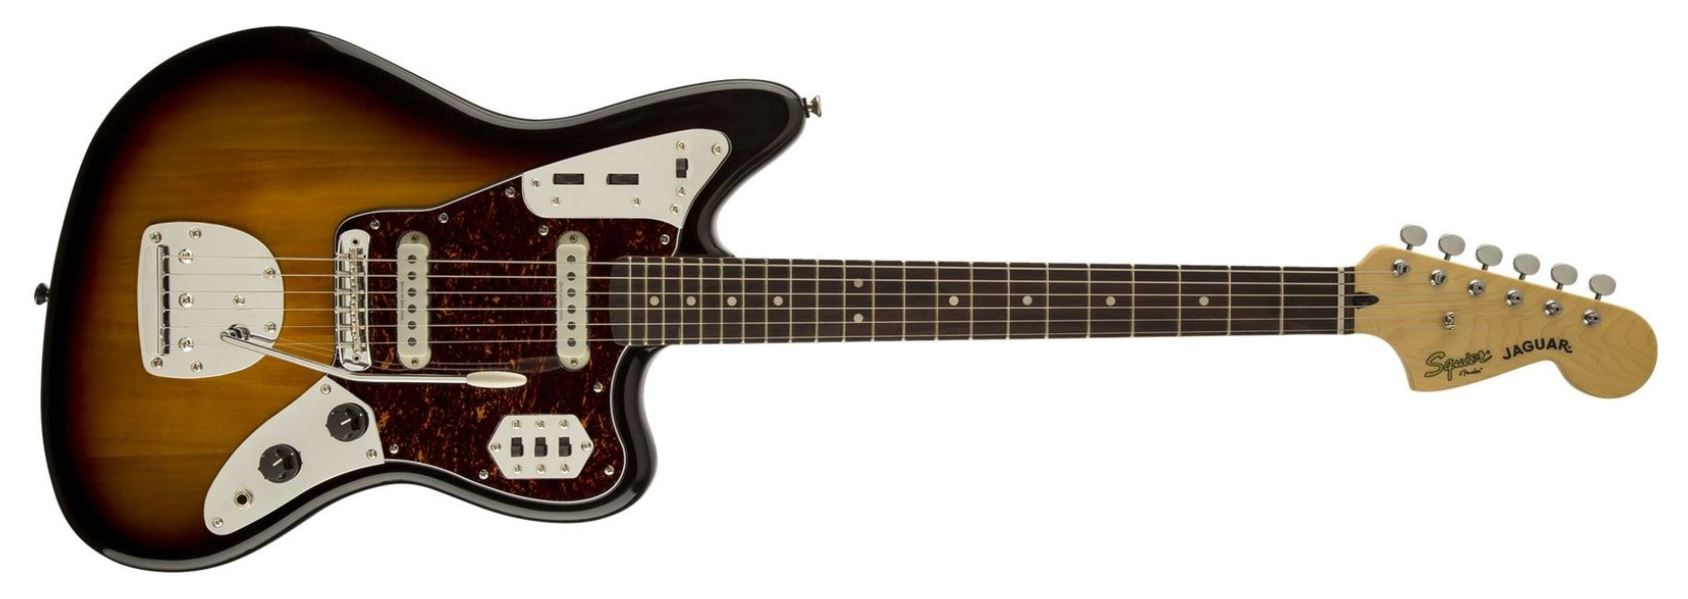 VINTAGE MODIFIED JAGUAR®, 3-COLOR SUNBURST